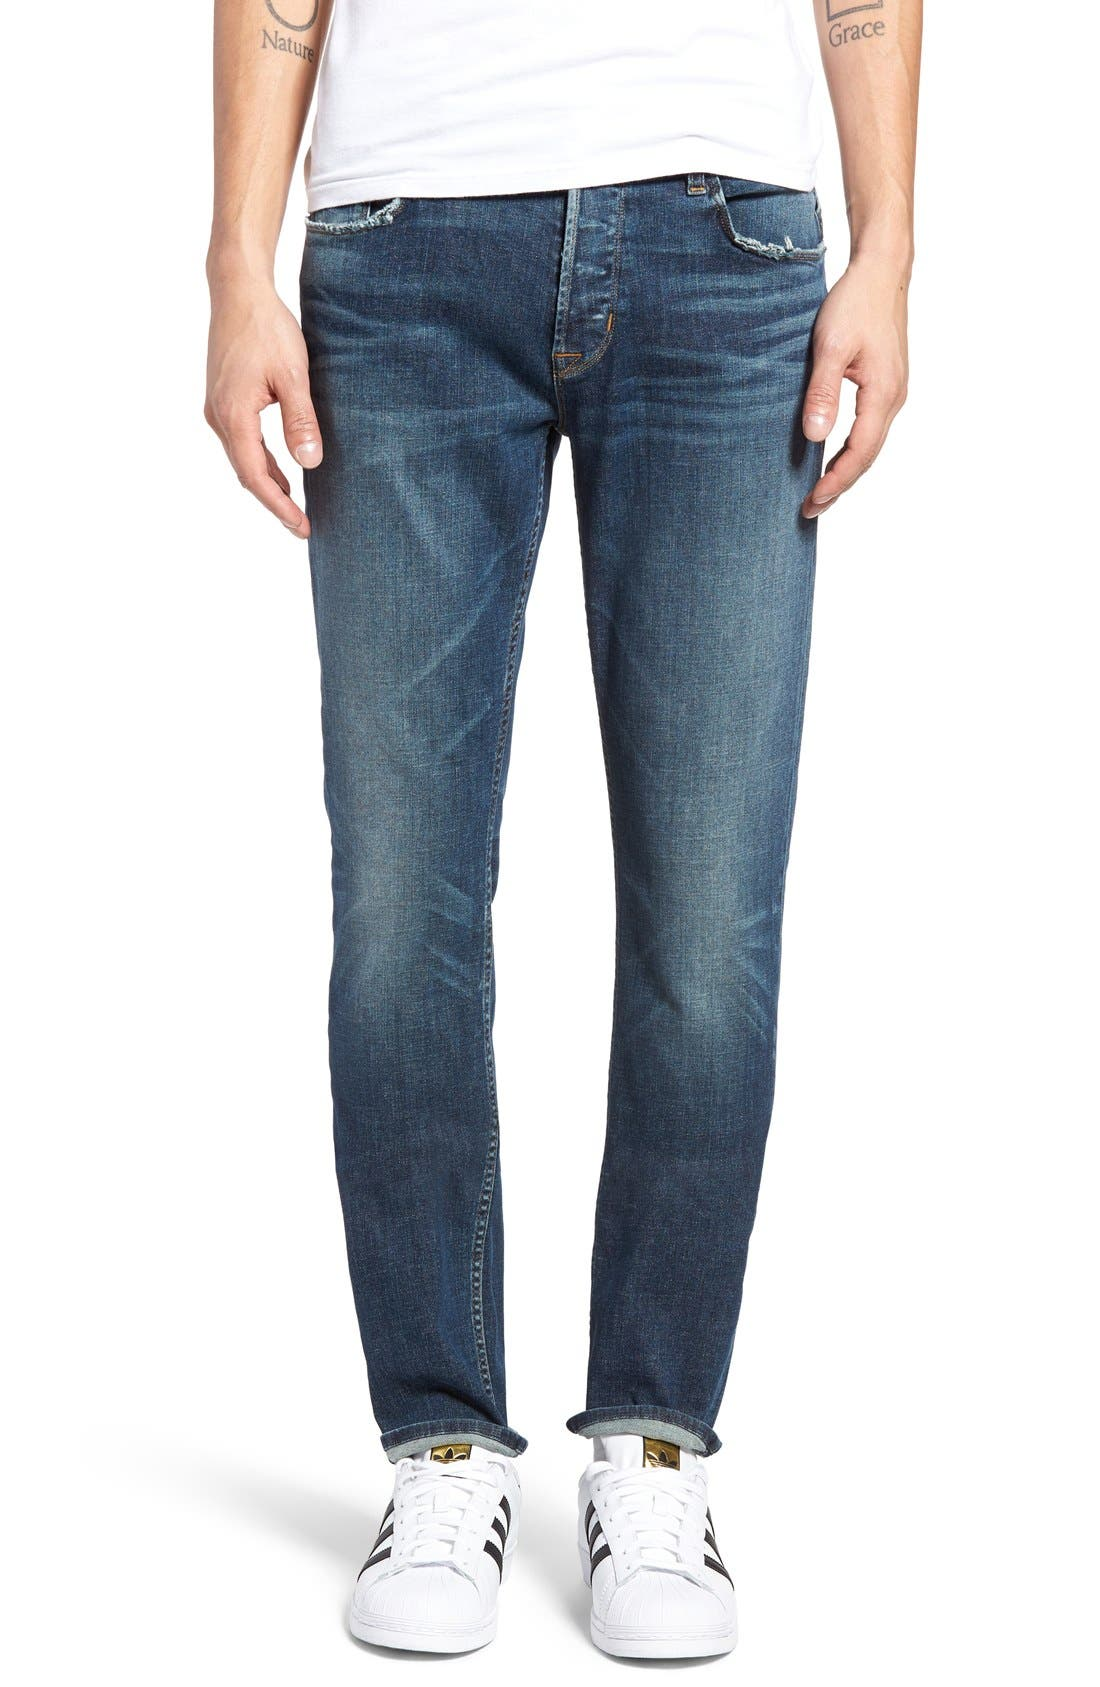 Sartor Slouchy Skinny Fit Jeans,                             Main thumbnail 1, color,                             Deserter